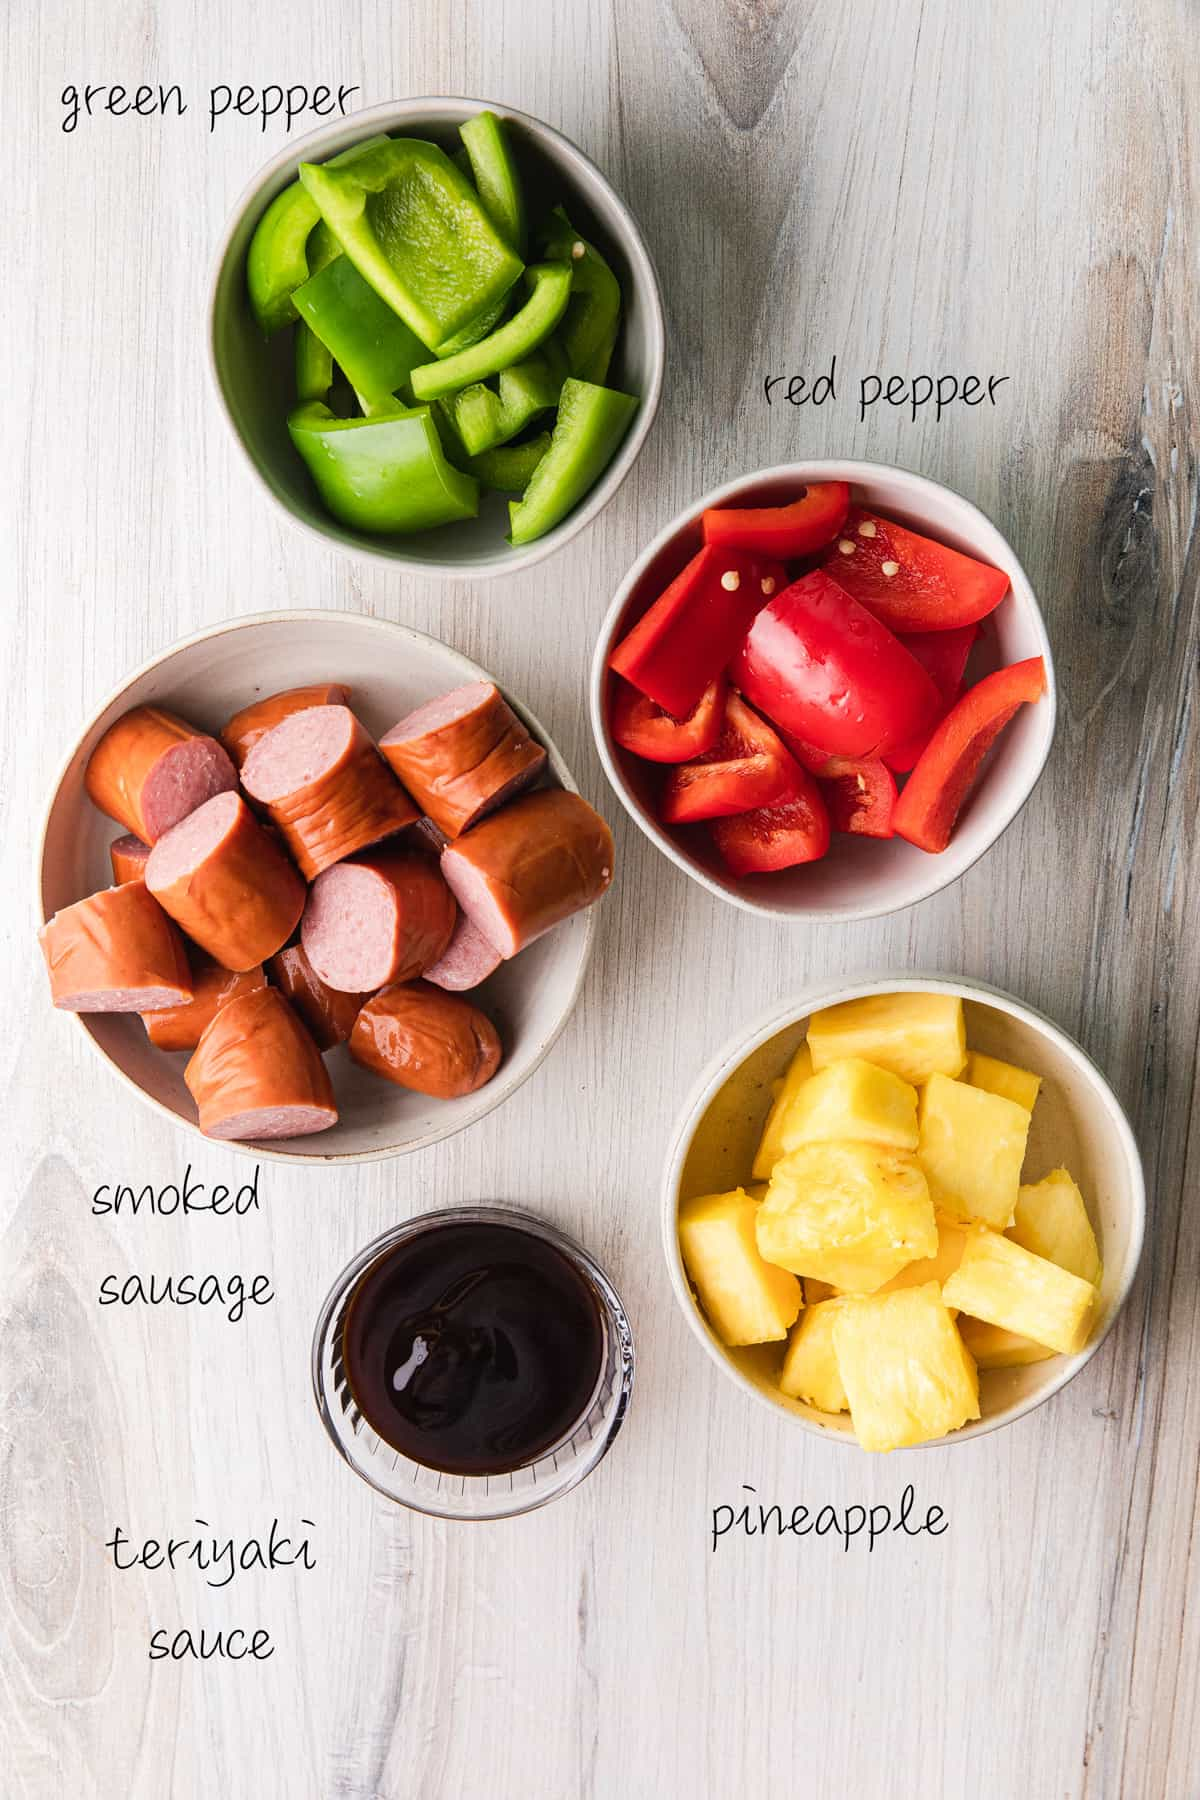 green peppers, red peppers, sausage, pineapple and teriyaki sauce